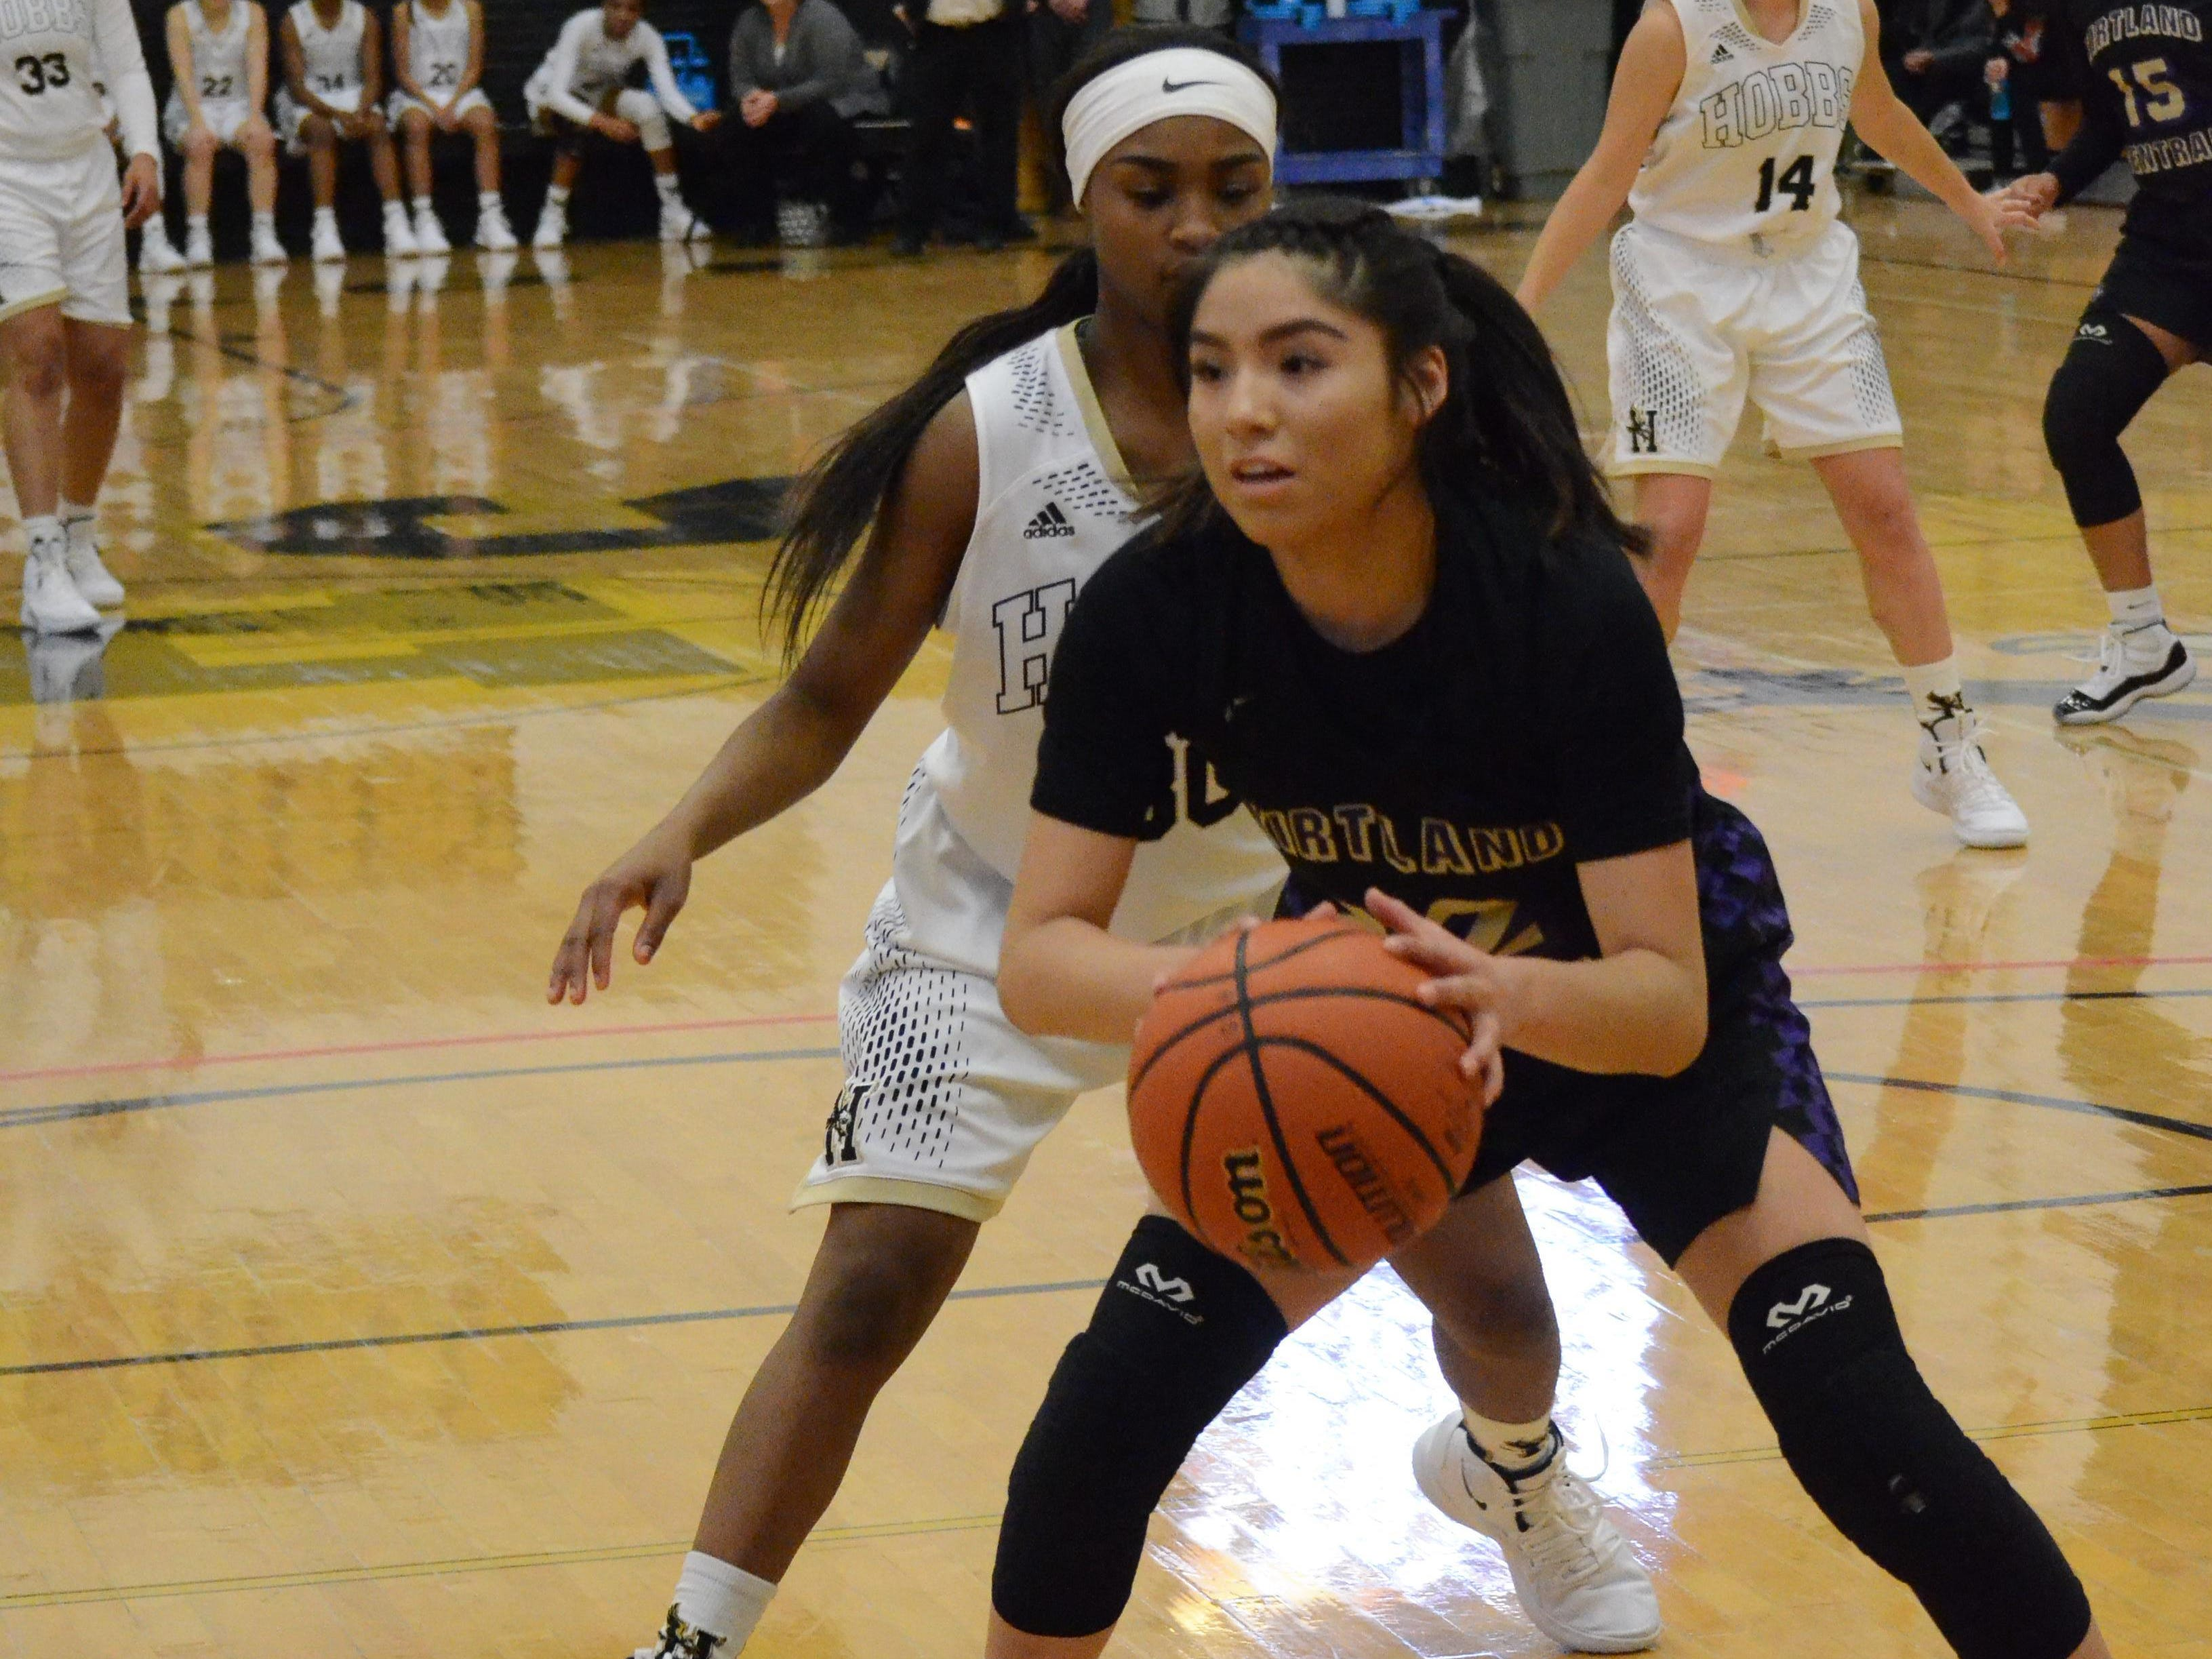 Kirtland Central's Tatelyn Manheimer looks to pass the ball down the left side against A'Niya Heckard (30) of Hobbs during Saturday's Hobbs Holiday Tournament championship game at Tasker Arena.